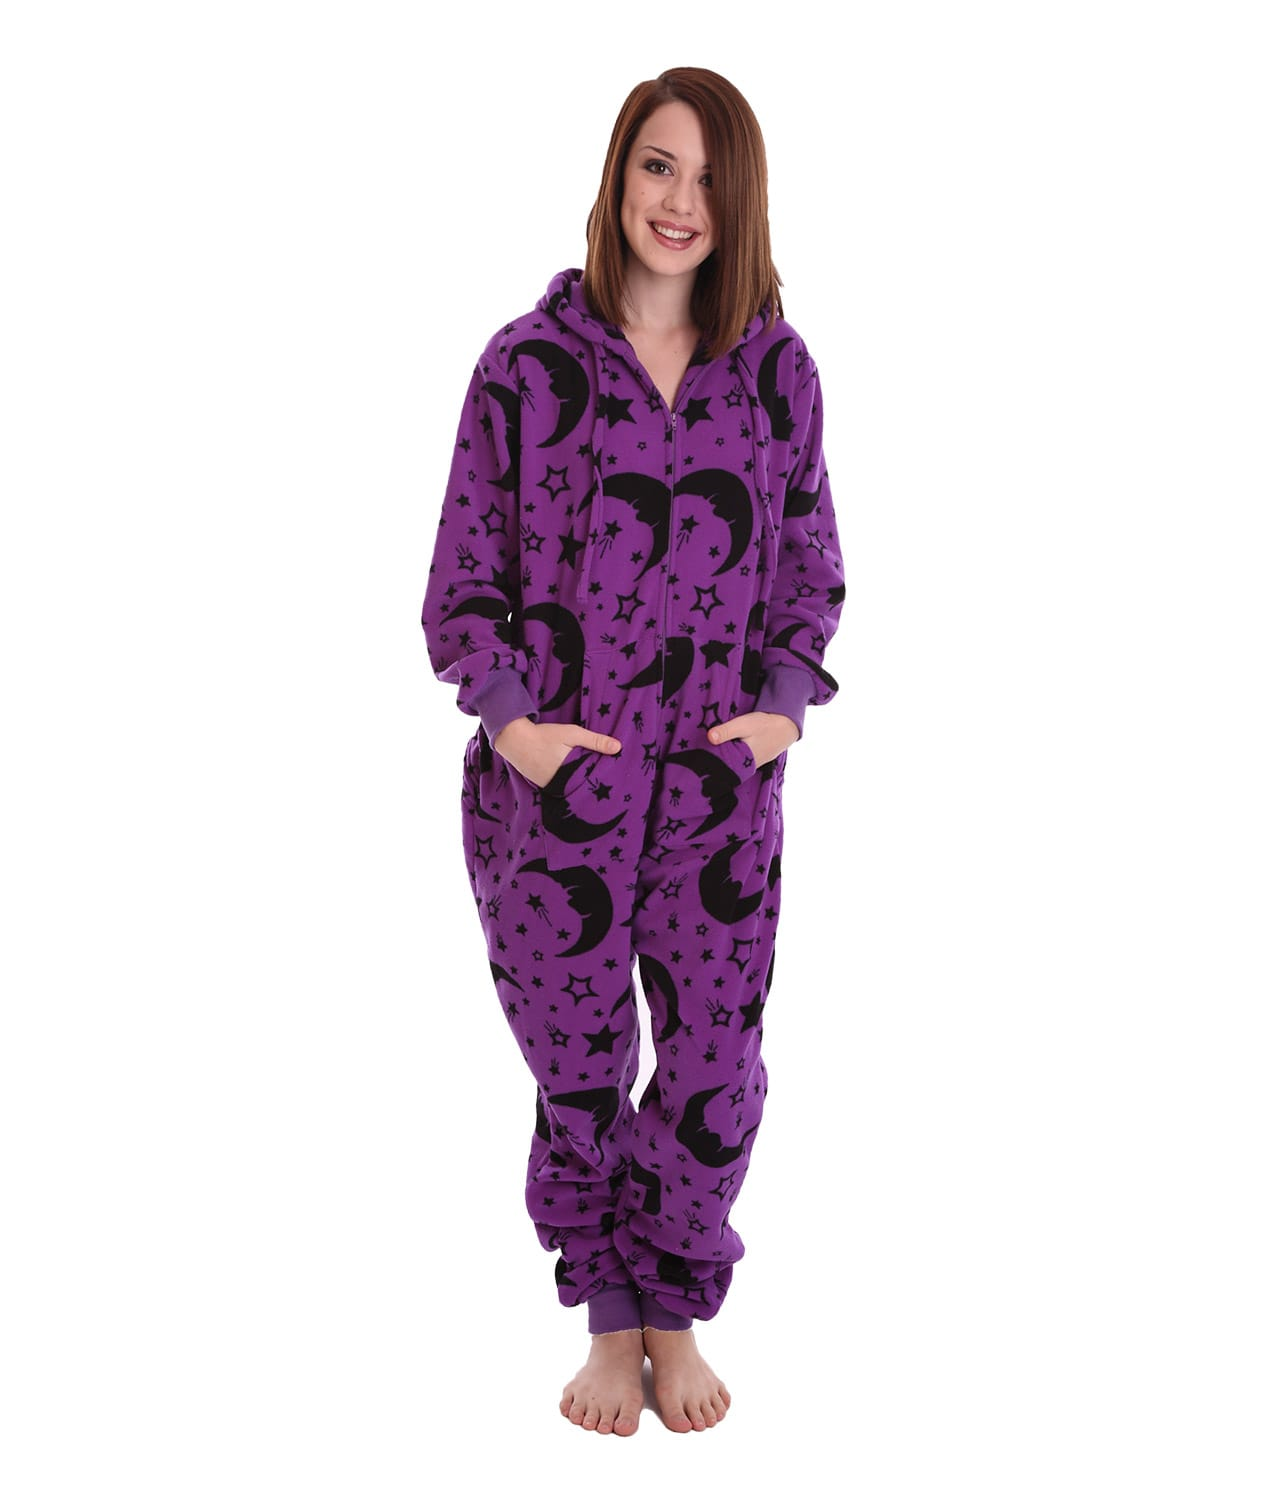 Onesie For Adult 67